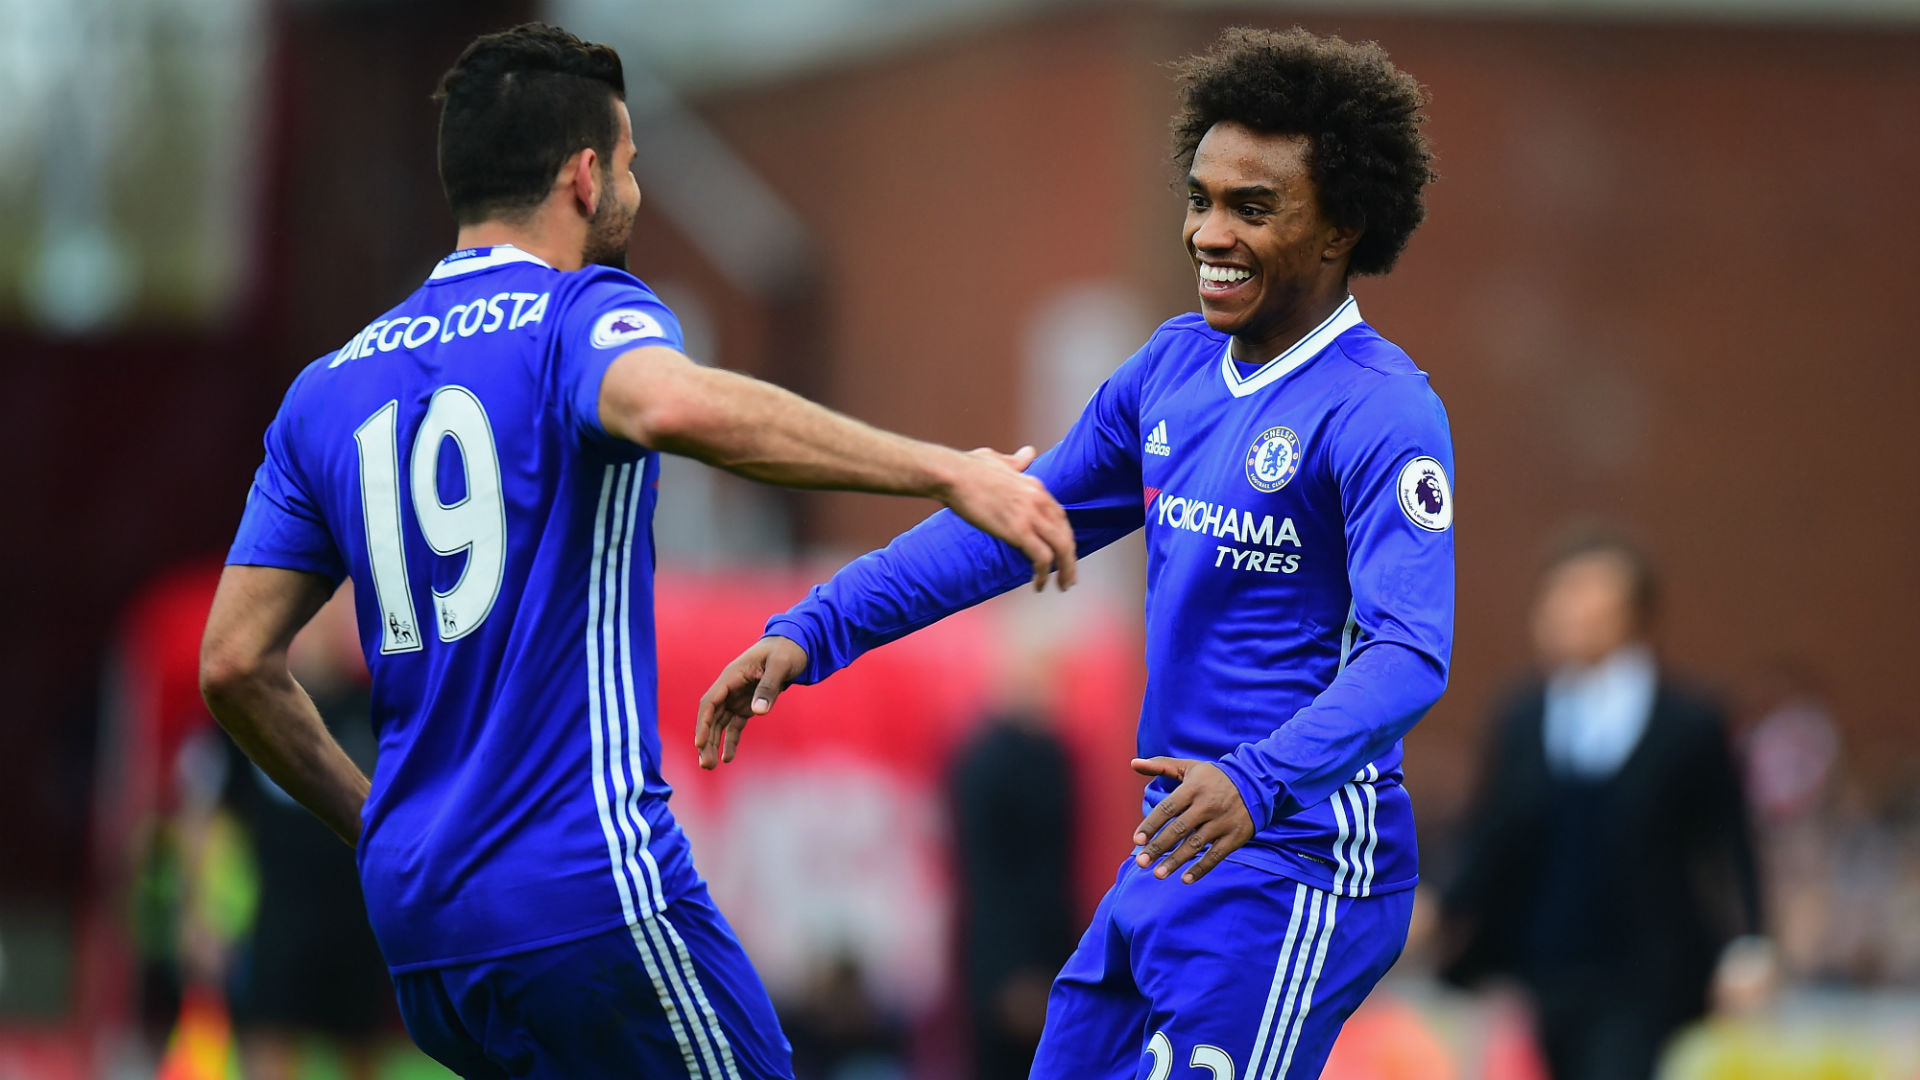 Want-away Chelsea striker Costa admits to contact with Mourinho